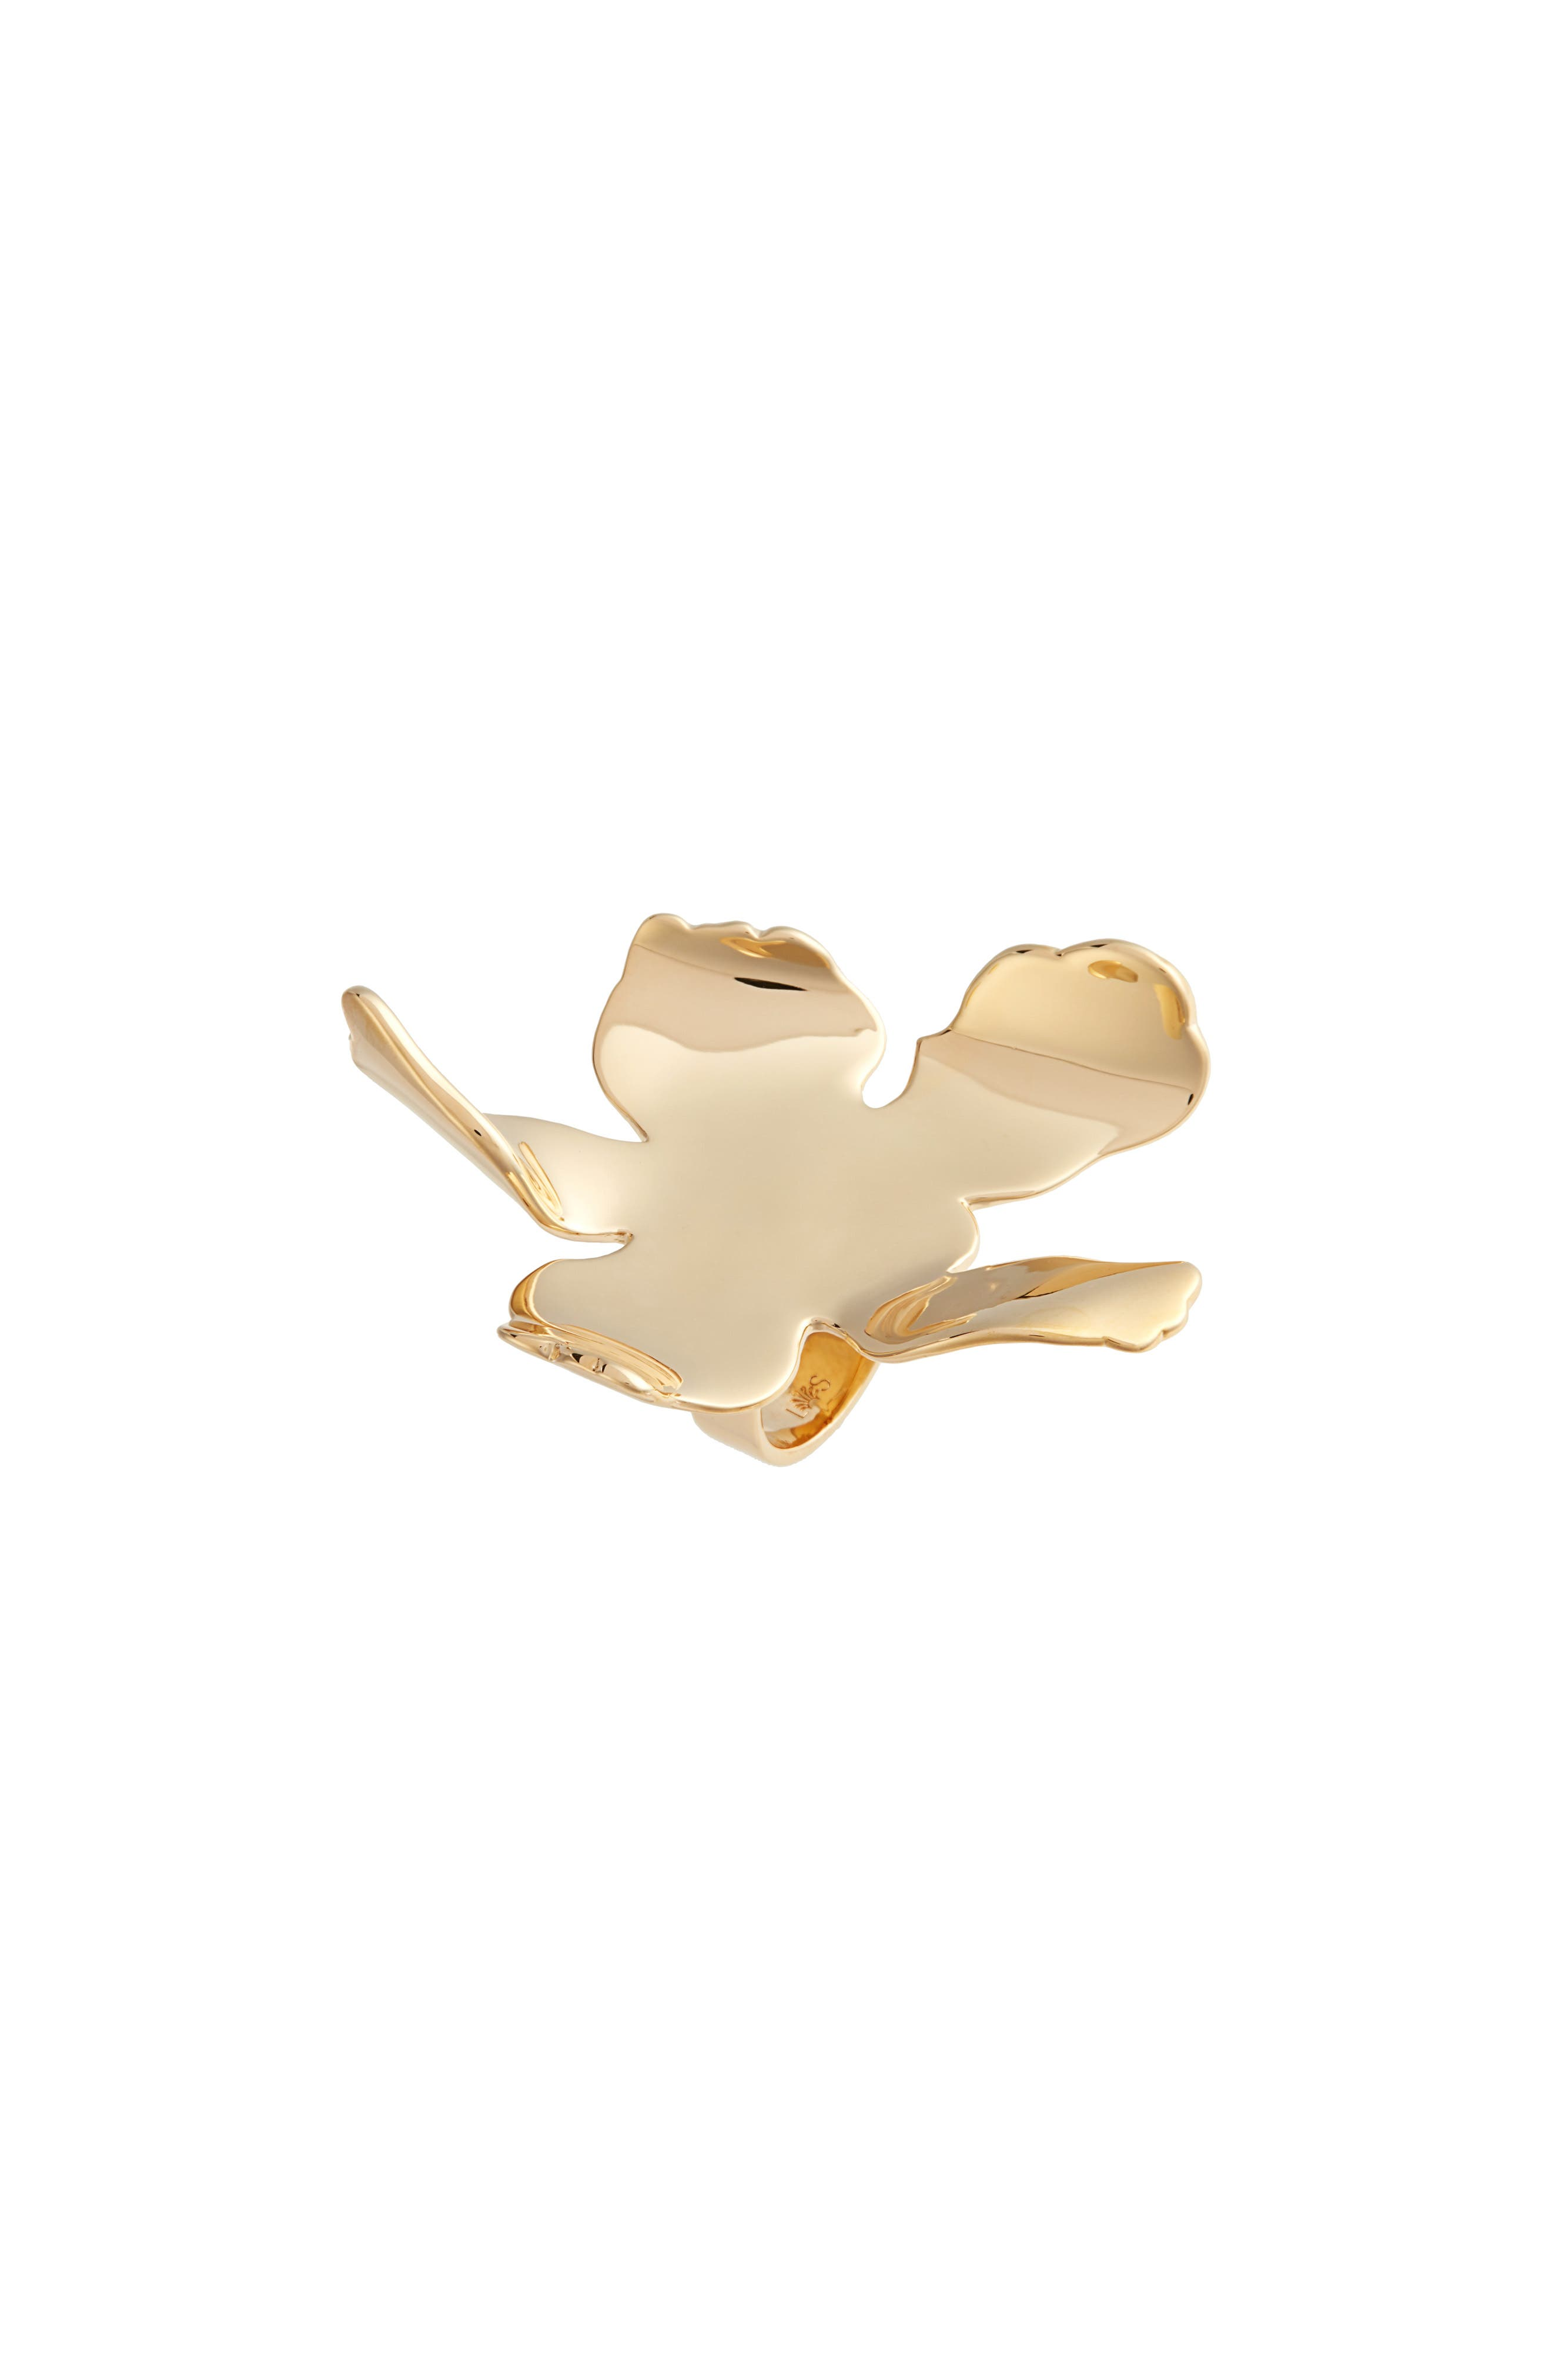 Golden Lily Cocktail Ring,                             Main thumbnail 1, color,                             GOLD